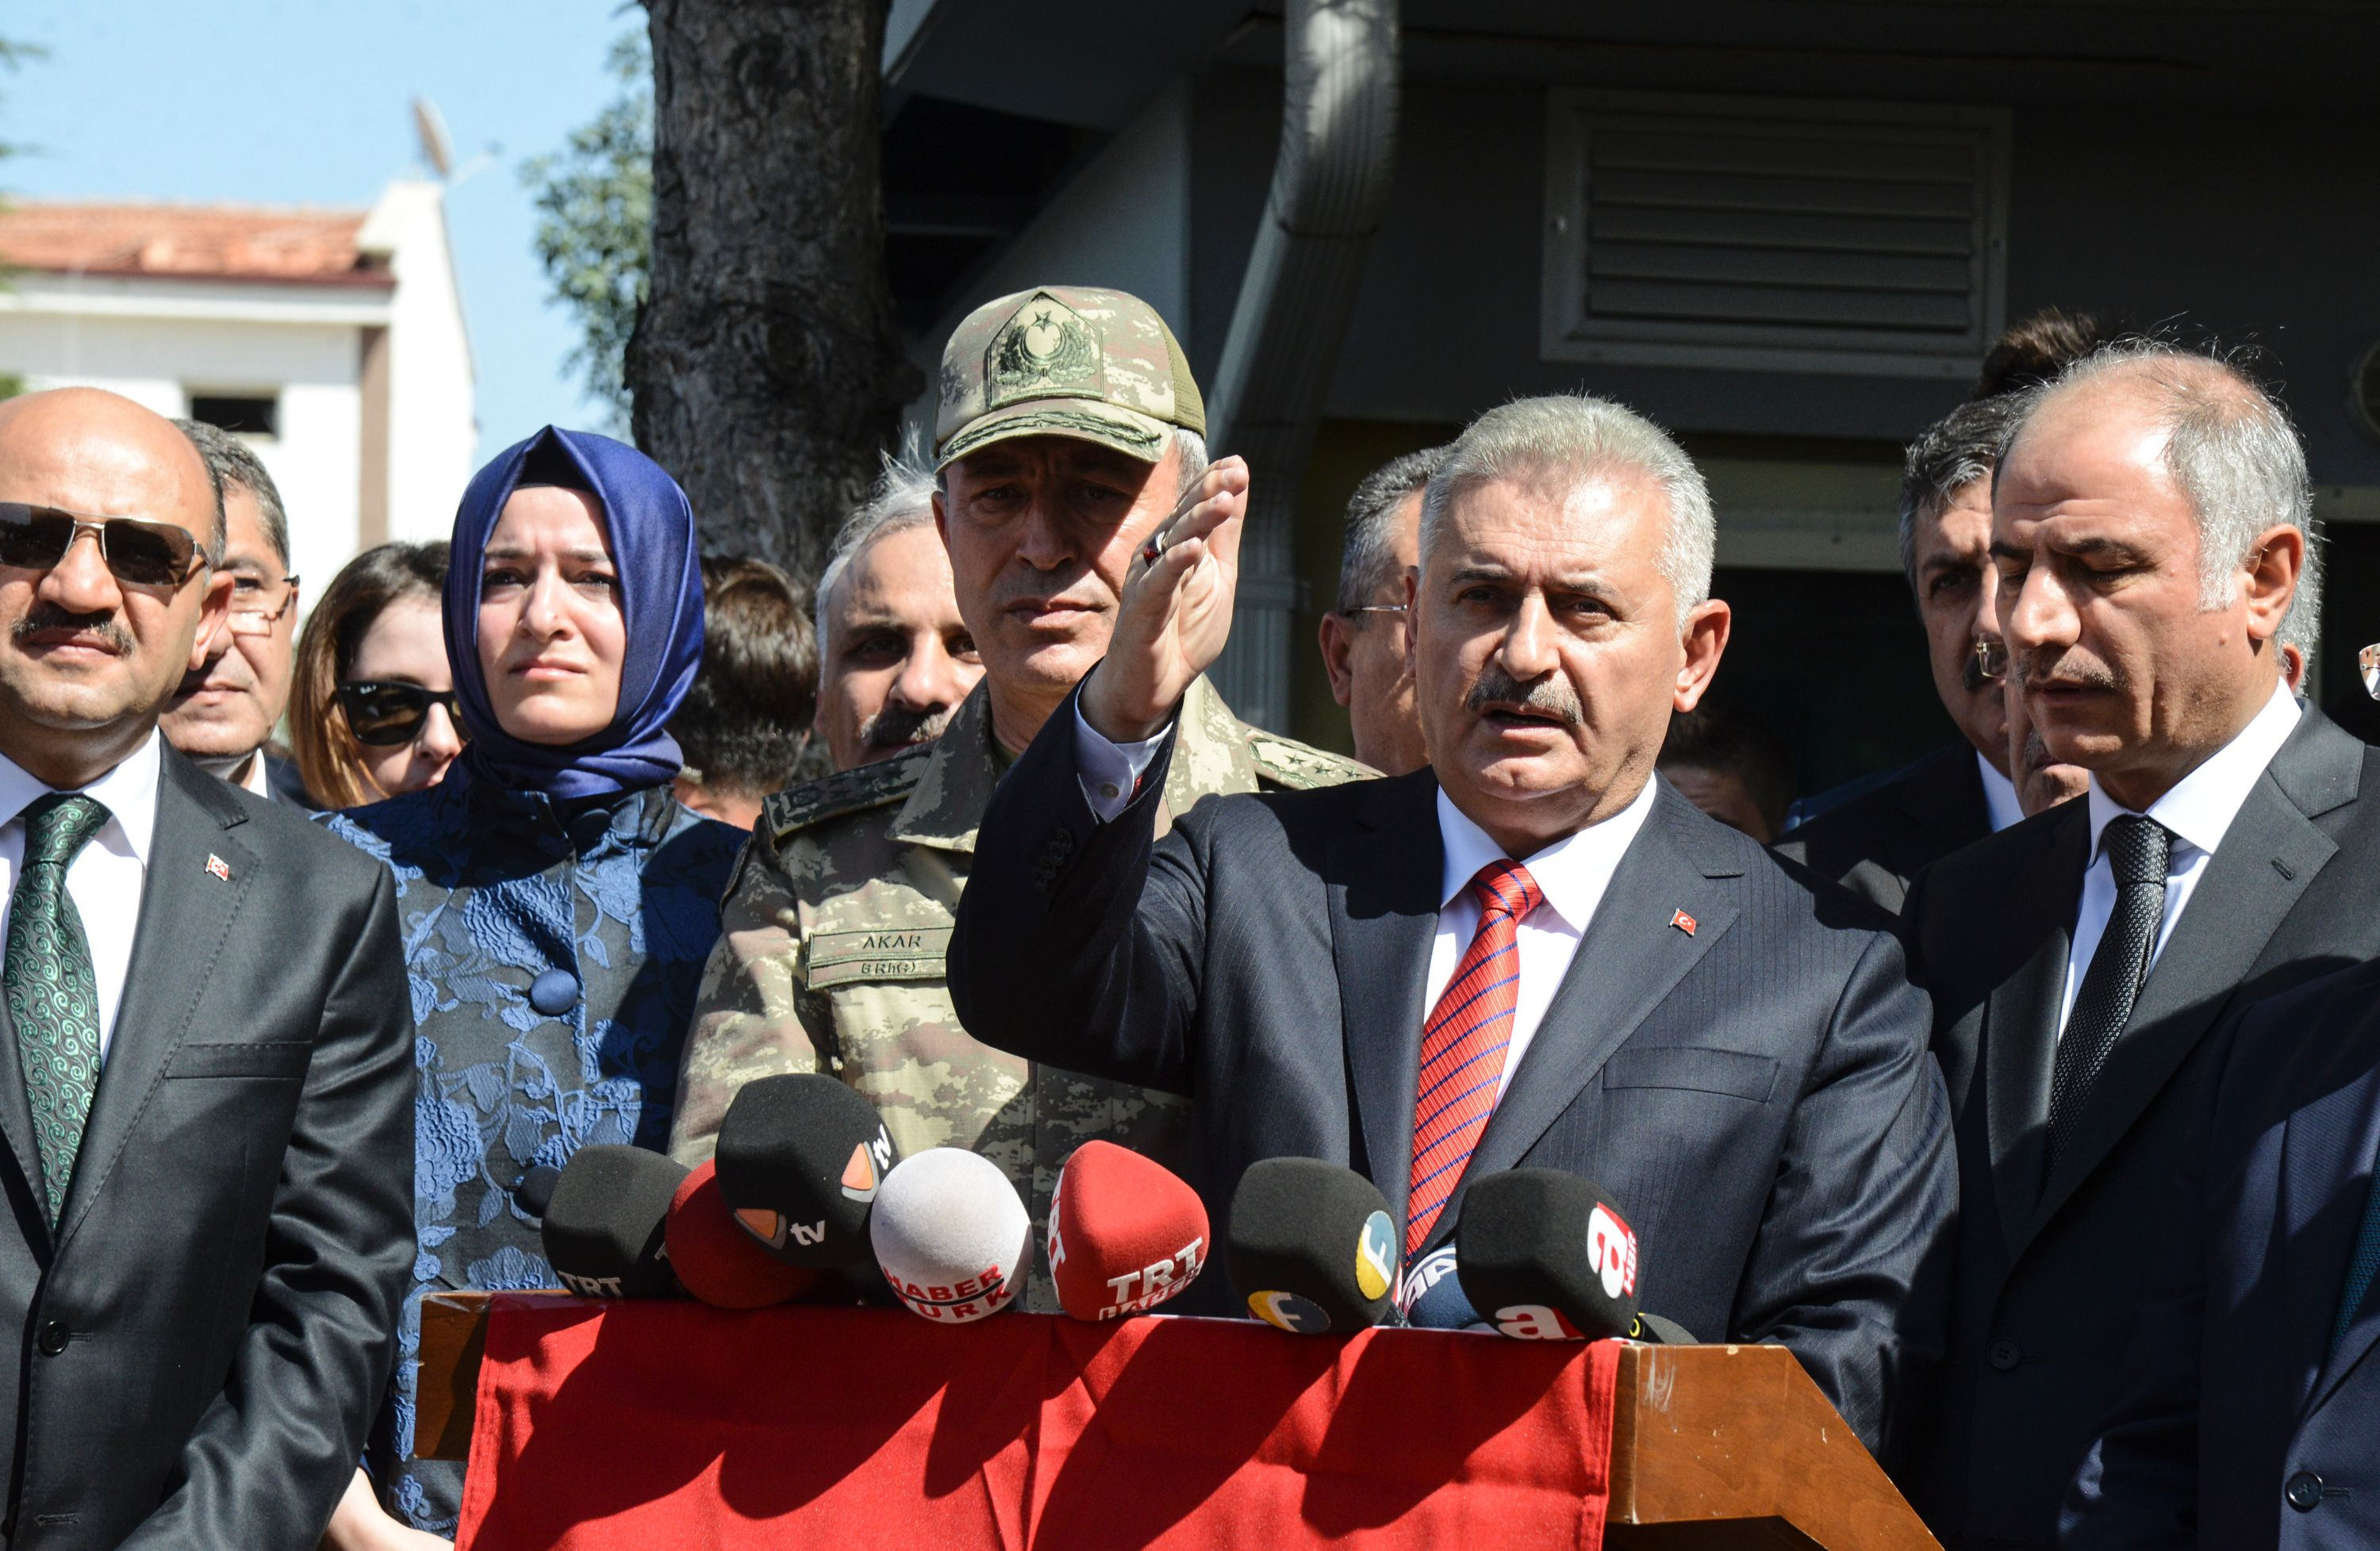 Turkey to take more active role on Syria in next six months, PM says